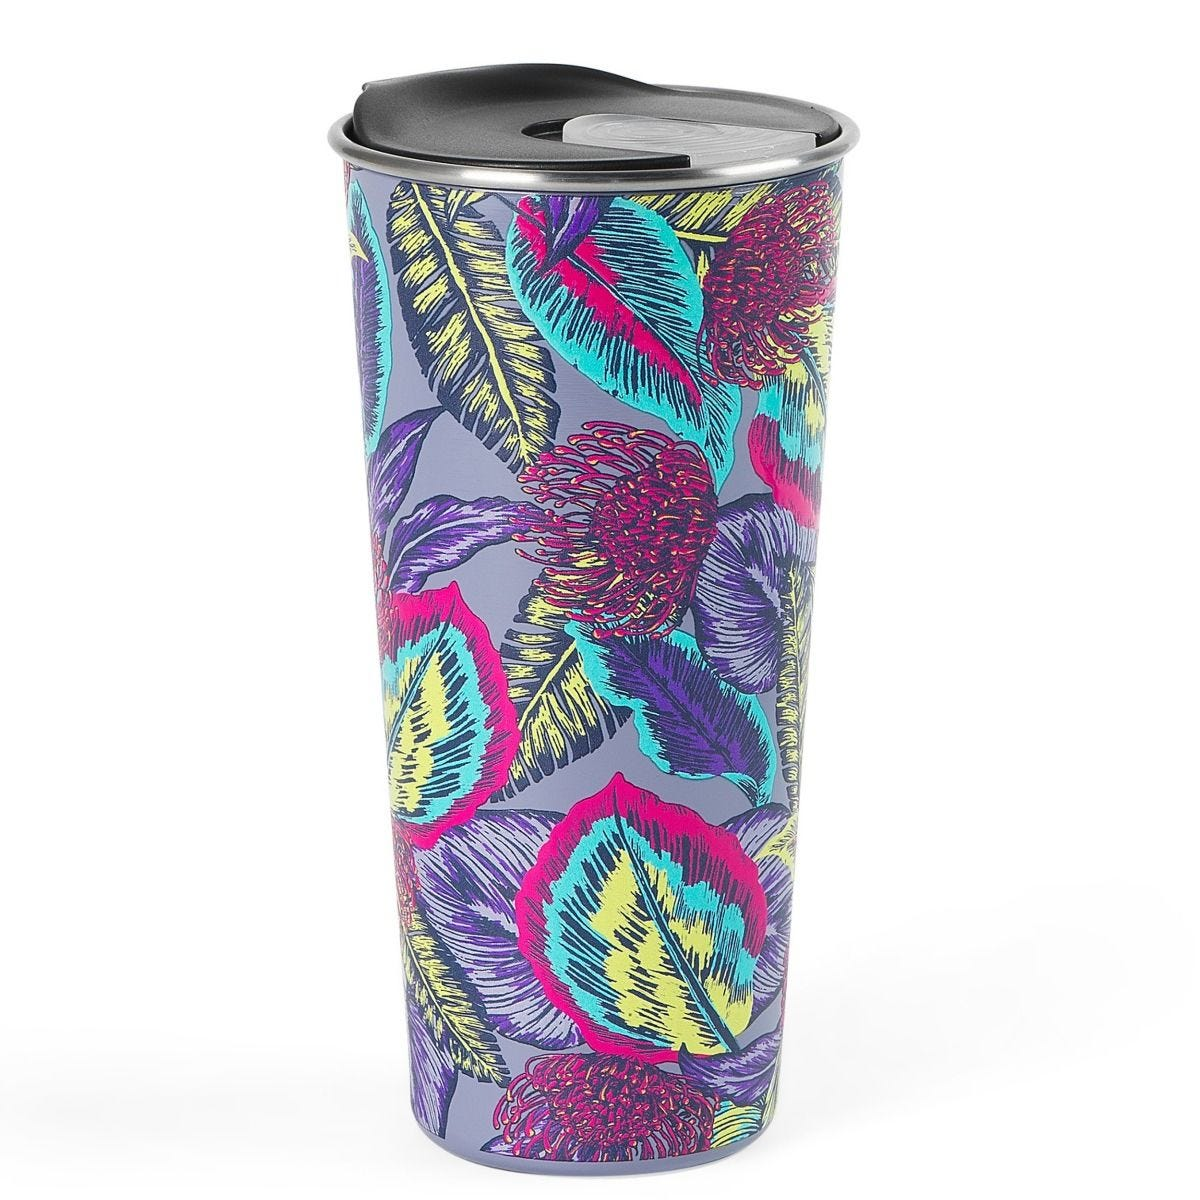 Cambridge Reusable Wild Tropics Sippy Cup With Lid | 500 ml | Shatter-proof